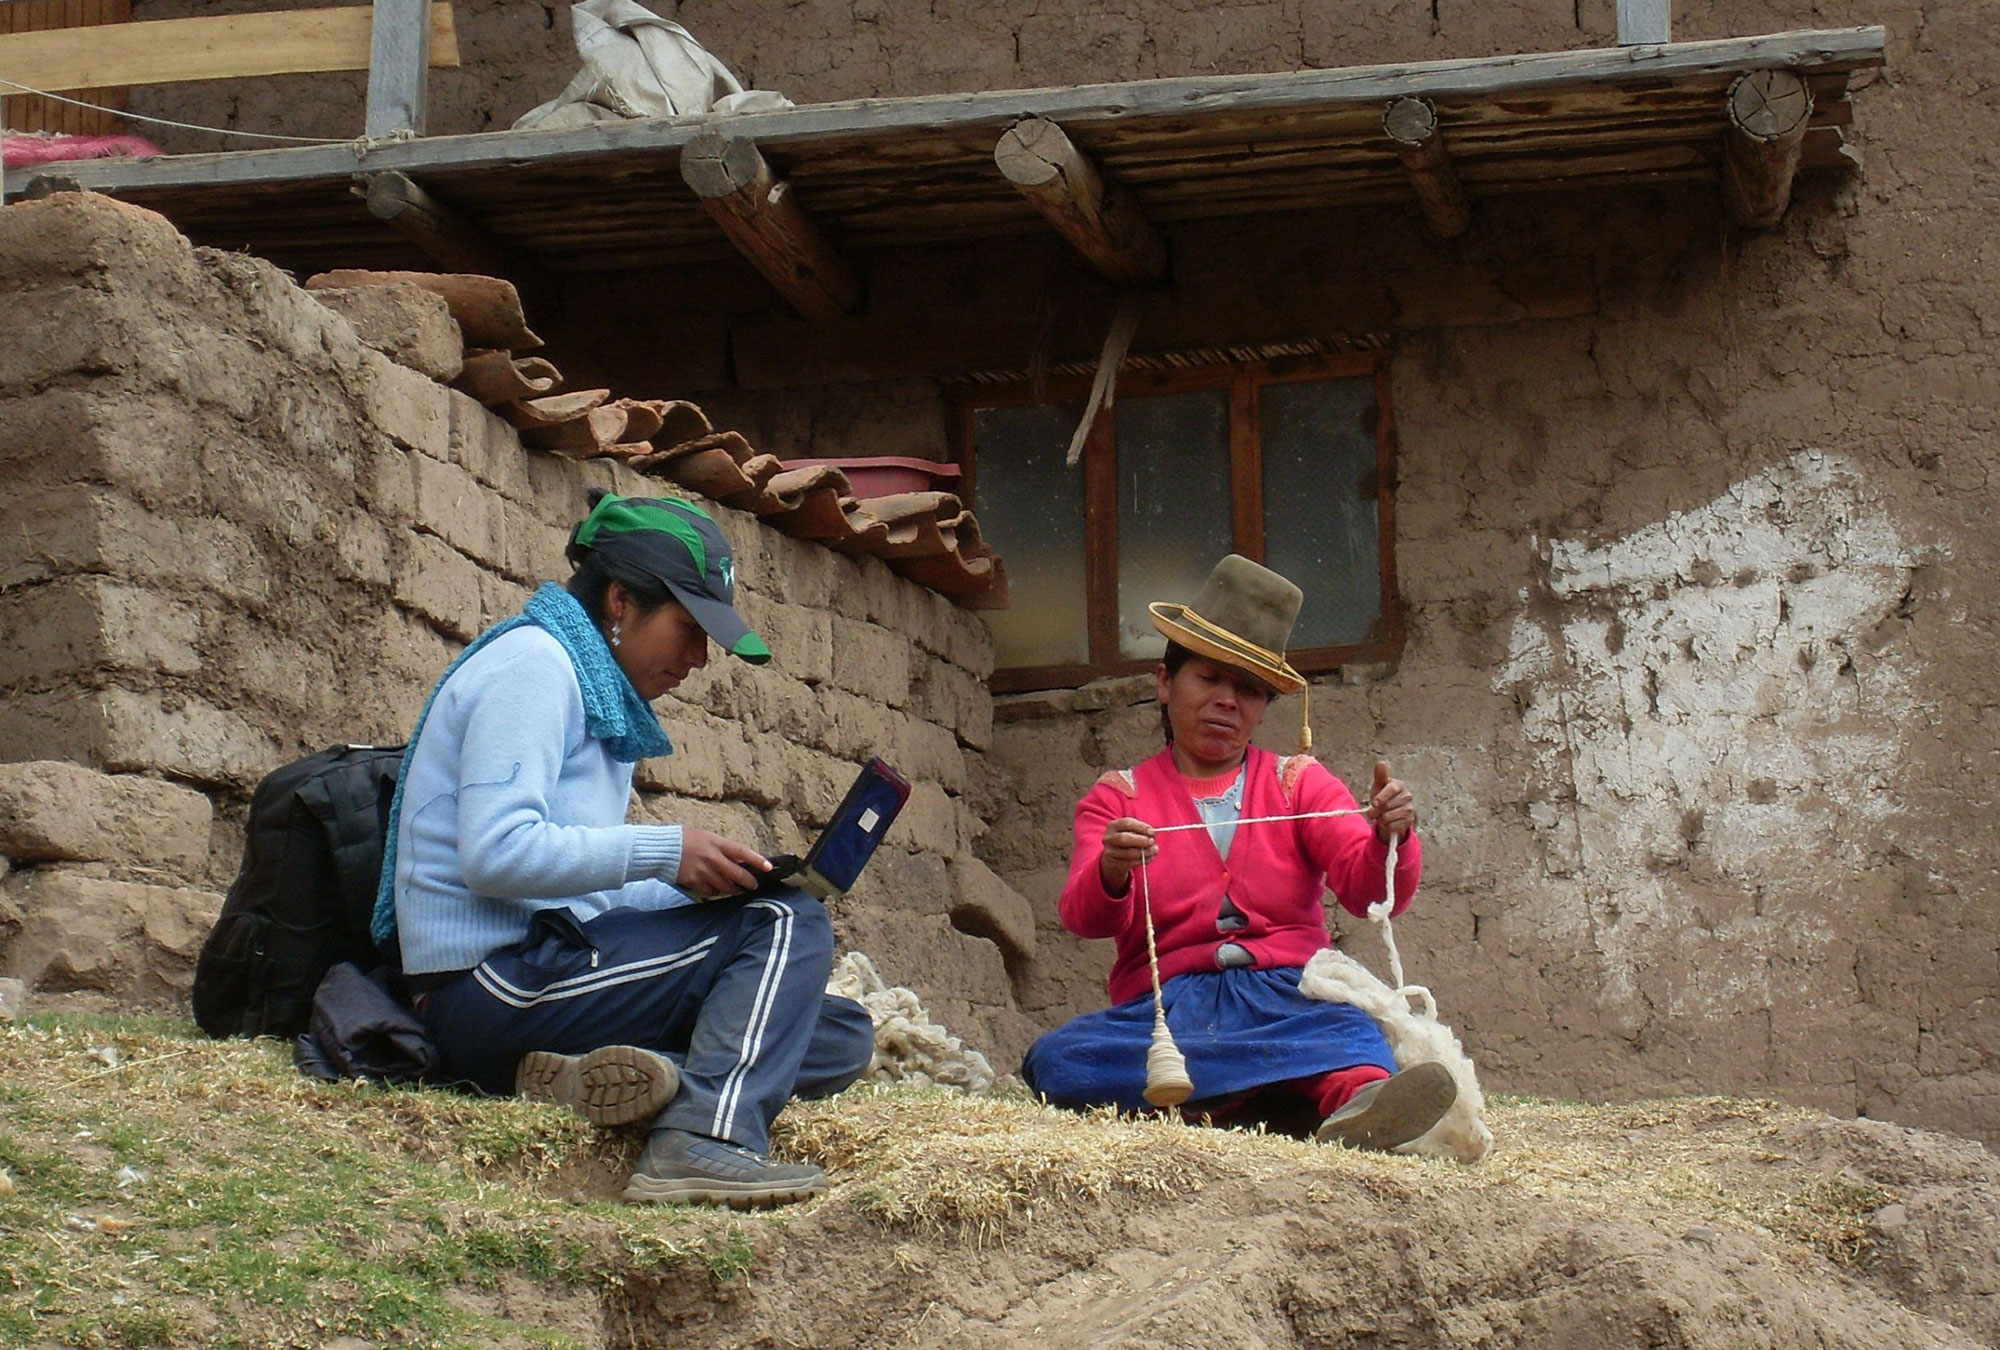 Woman on laptop talks to Peruvian woman spinning wool